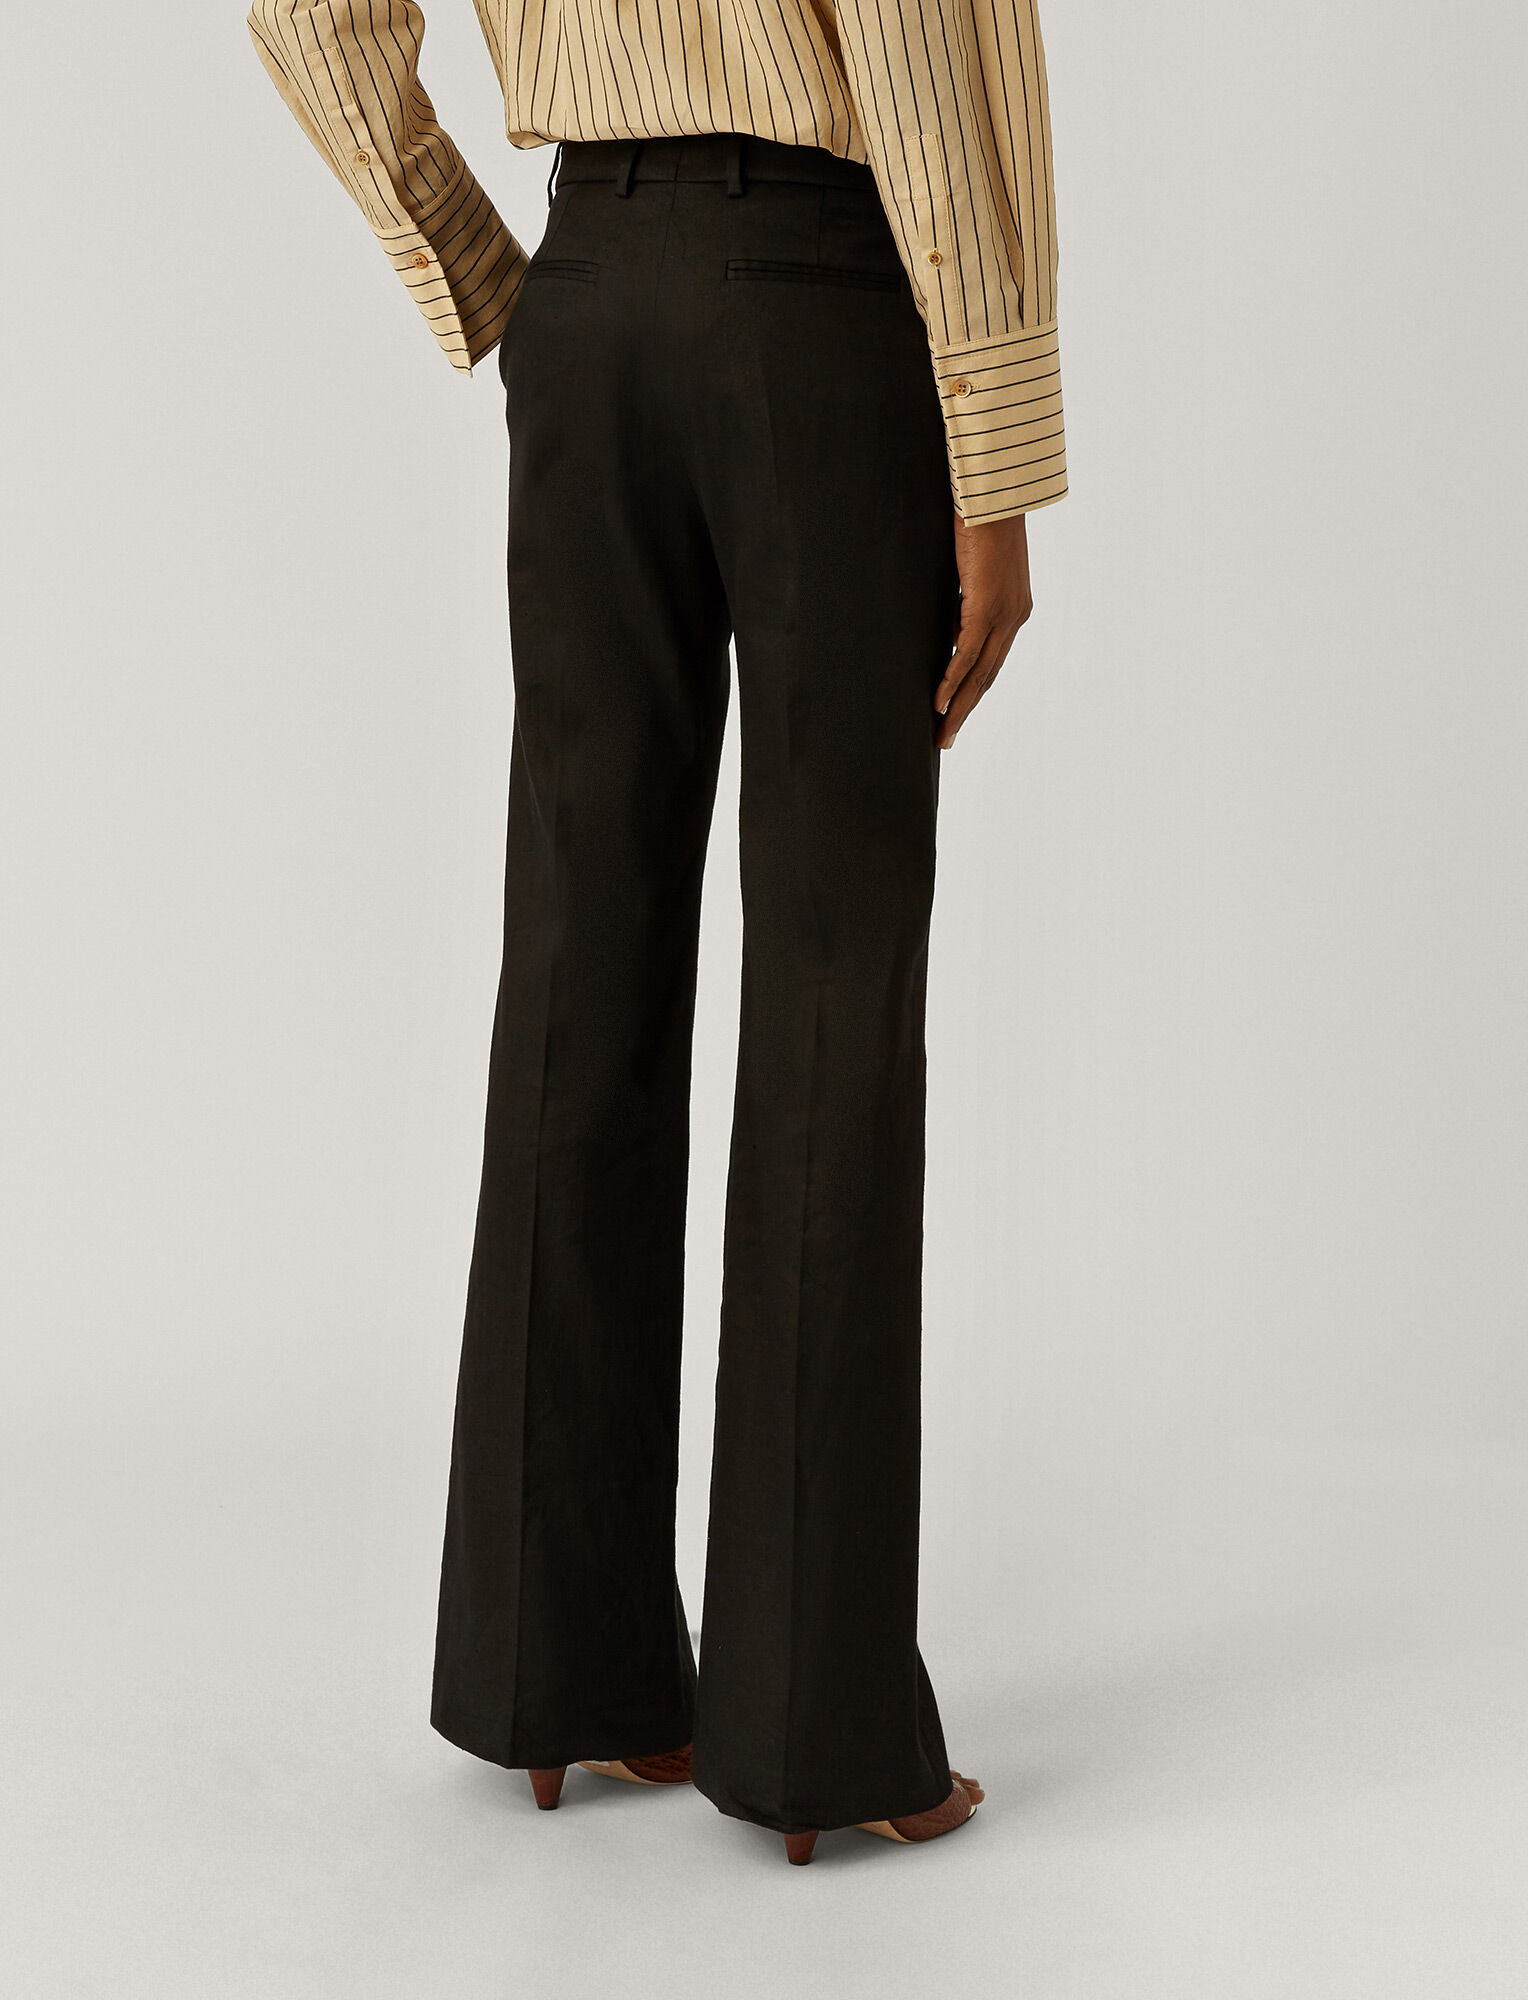 Joseph, Morissey Stretch Linen Trousers, in BLACK